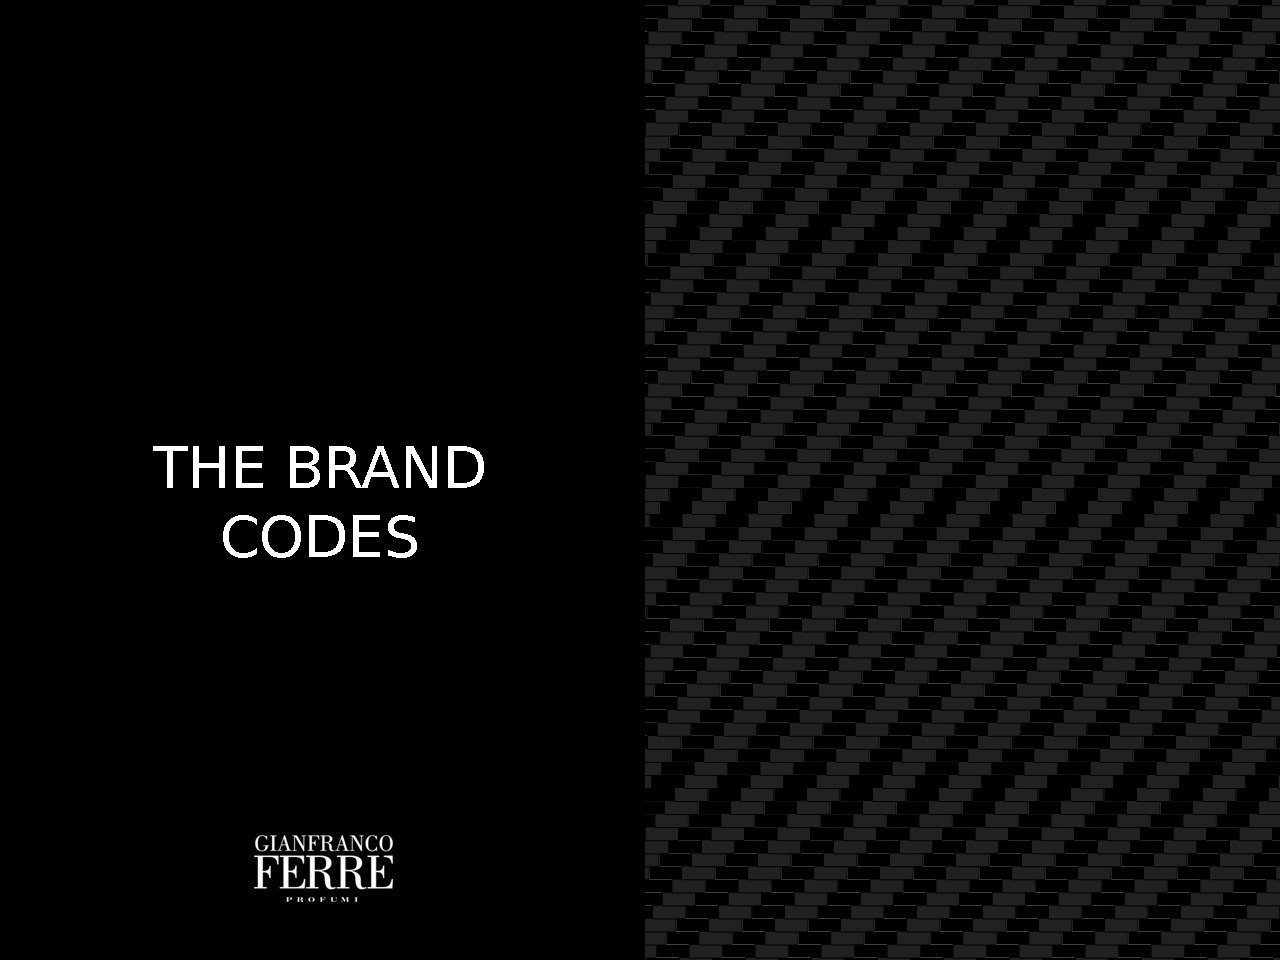 THE BRAND CODES